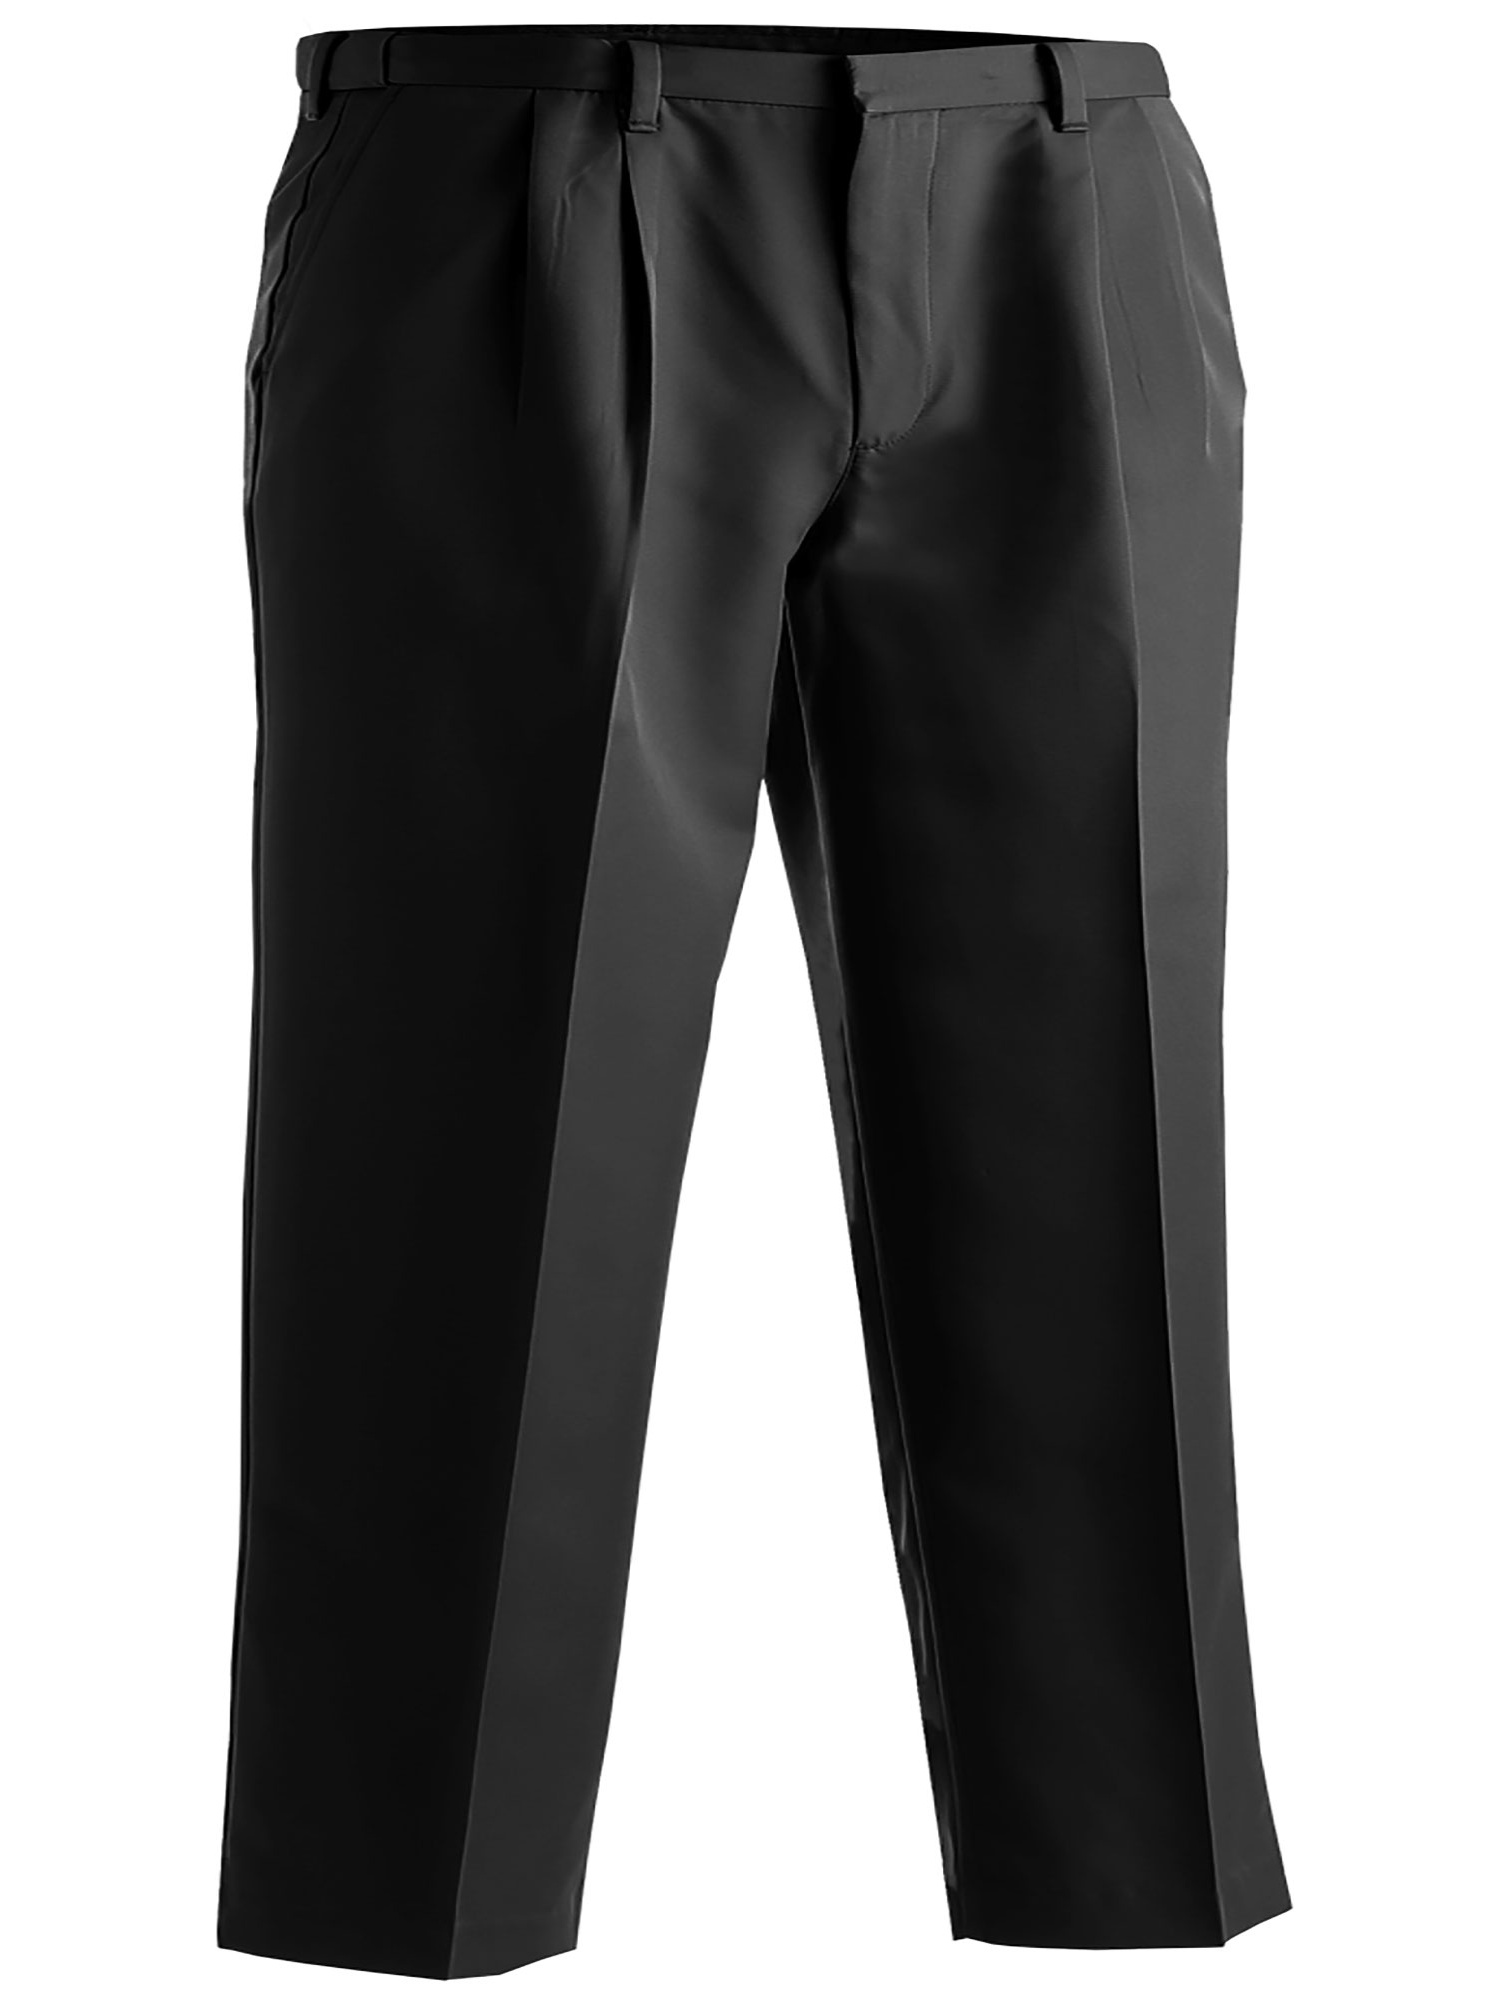 Edwards Garment Men's Pleated Front Brass Zipper Dress Pant, Style 2674